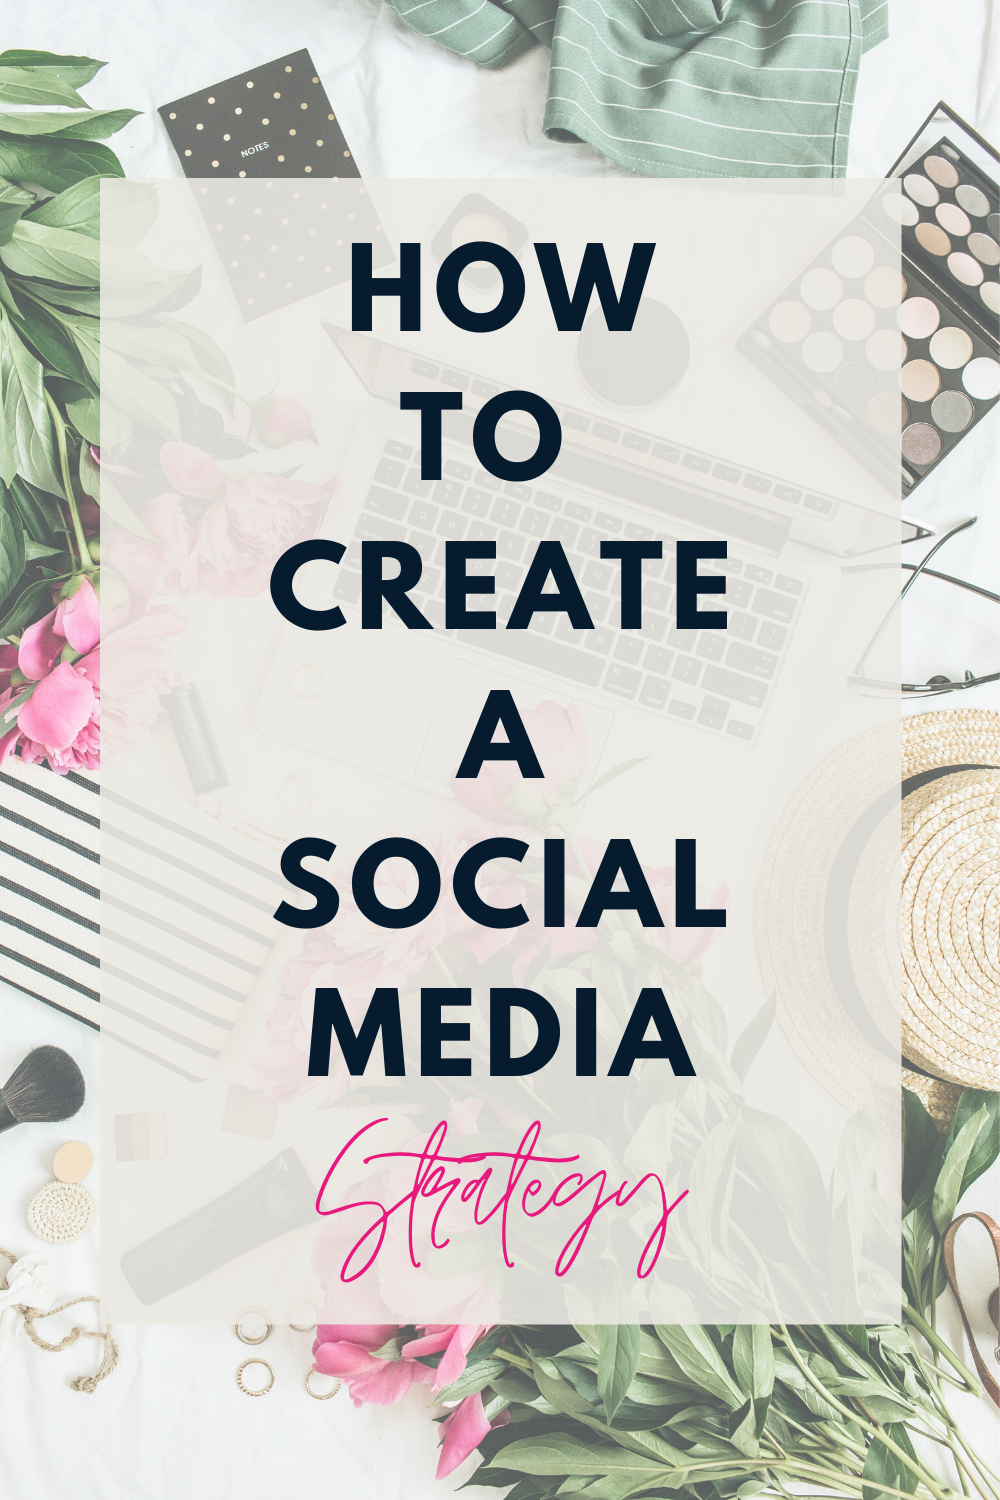 How To Create A Social Media Strategy Guide Download | Elle Blonde Luxury Lifestyle Destination Blog